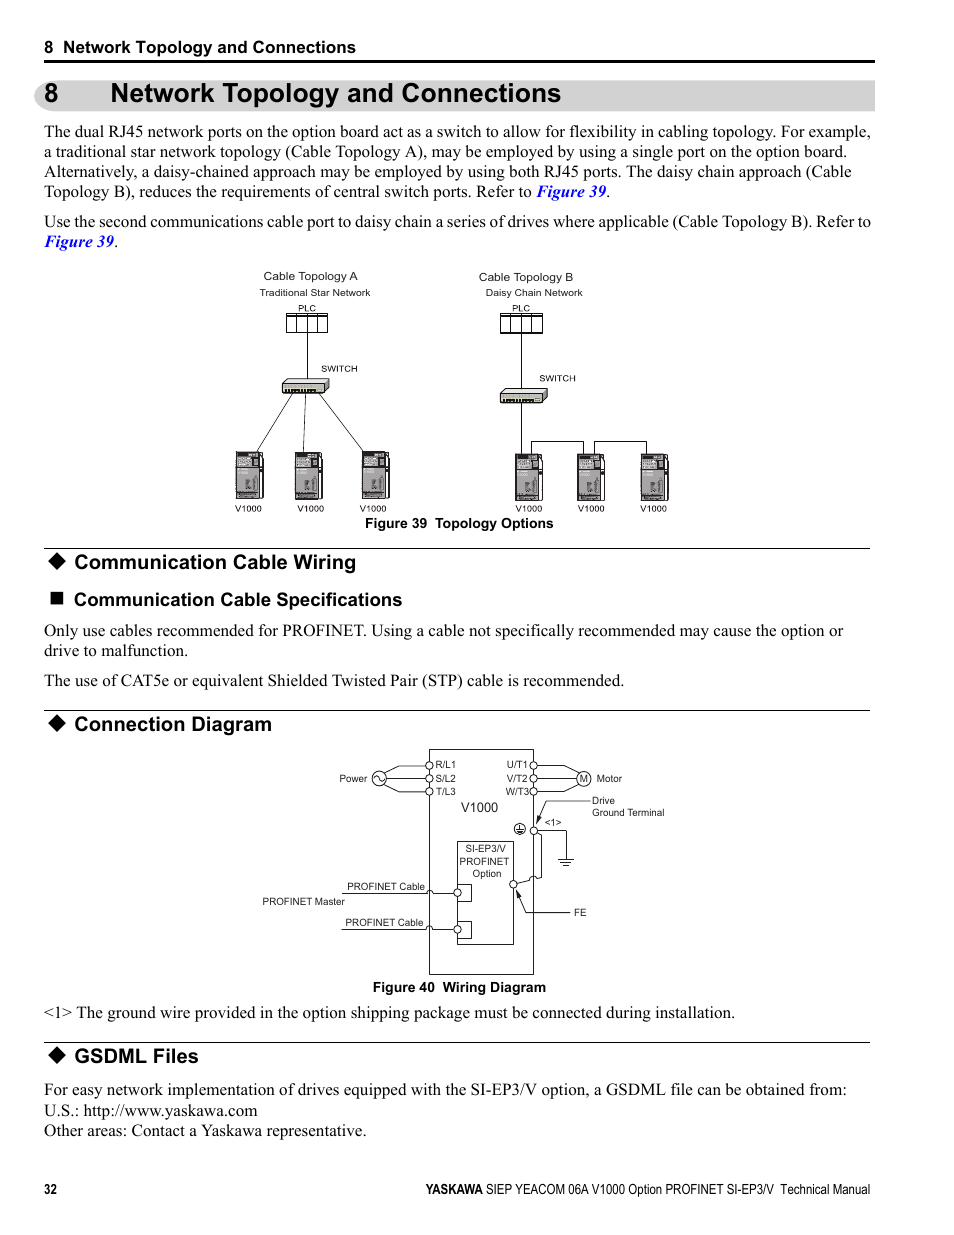 8 Network Topology And Connections Communication Cable Wiring Twisted Pair Schematic Connection Diagram Yaskawa V1000 Series Option Si Ep3 V Profinet User Manual Page 32